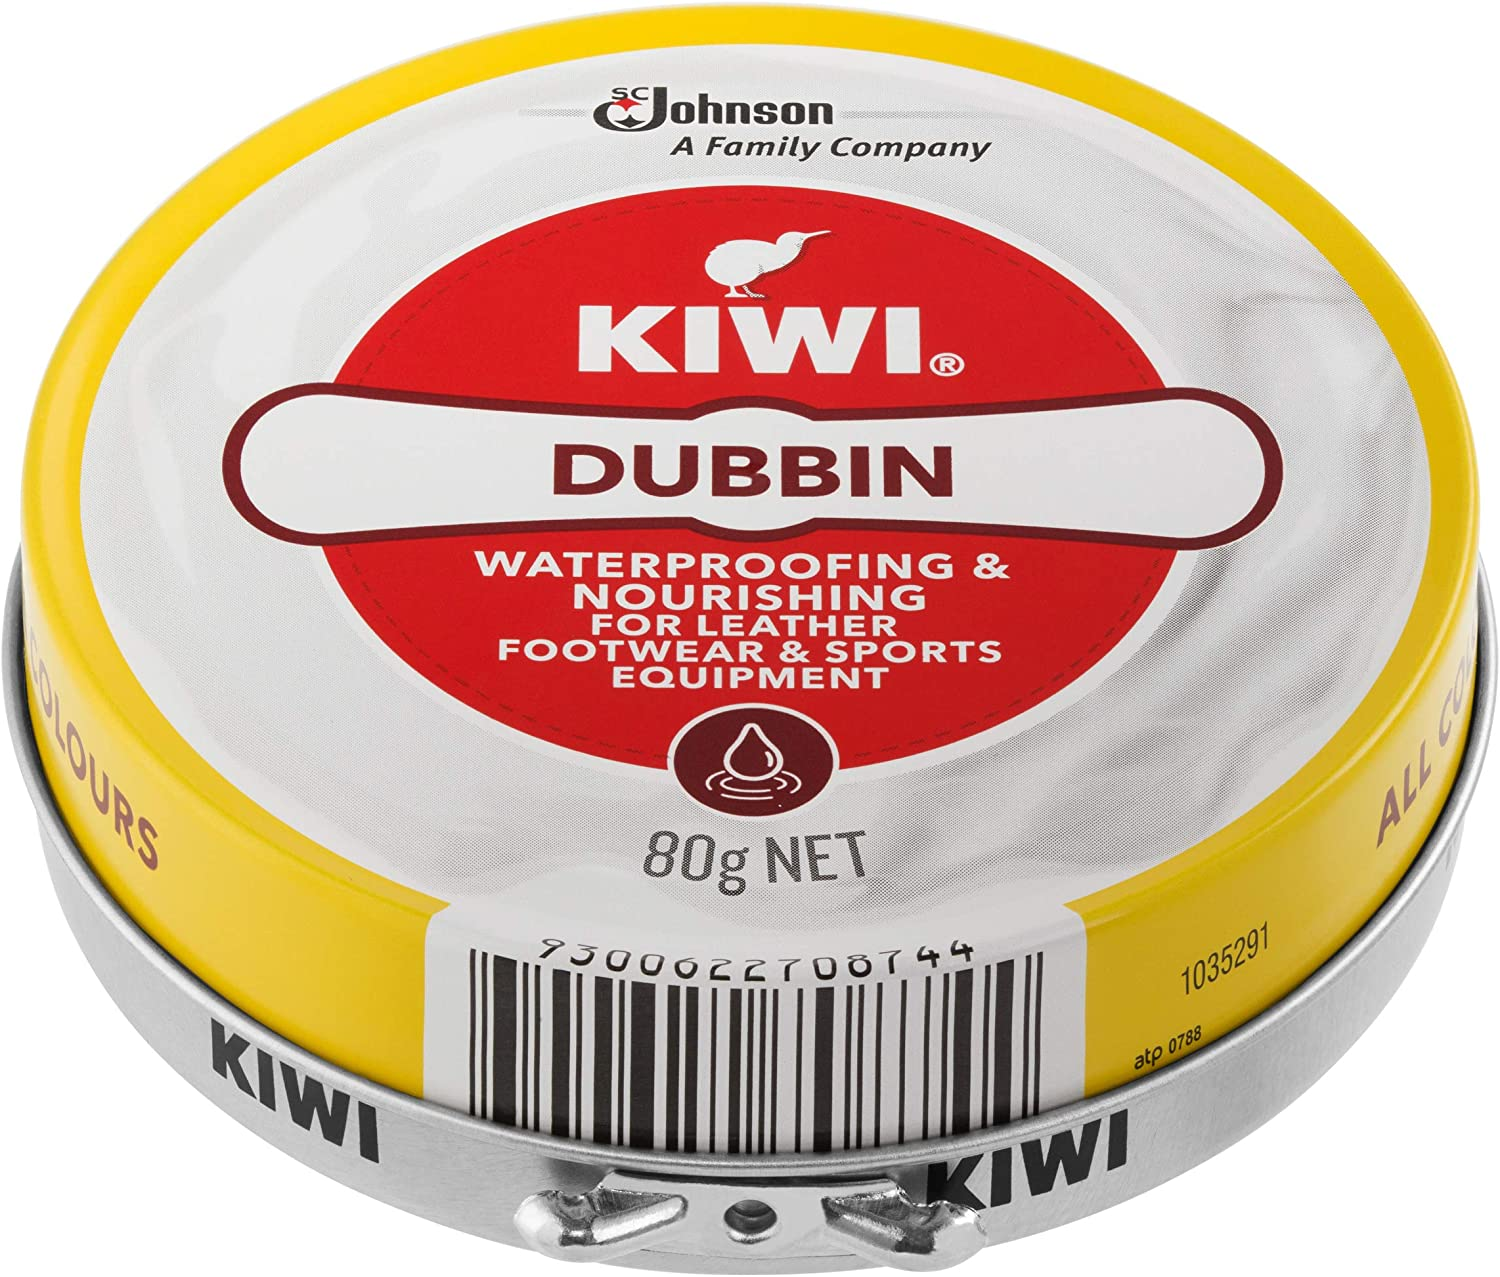 KIWI Dubbin Waterproofing and Nourishing Leather Protector for Footwear and Sports Equipment, Neutral, 80g